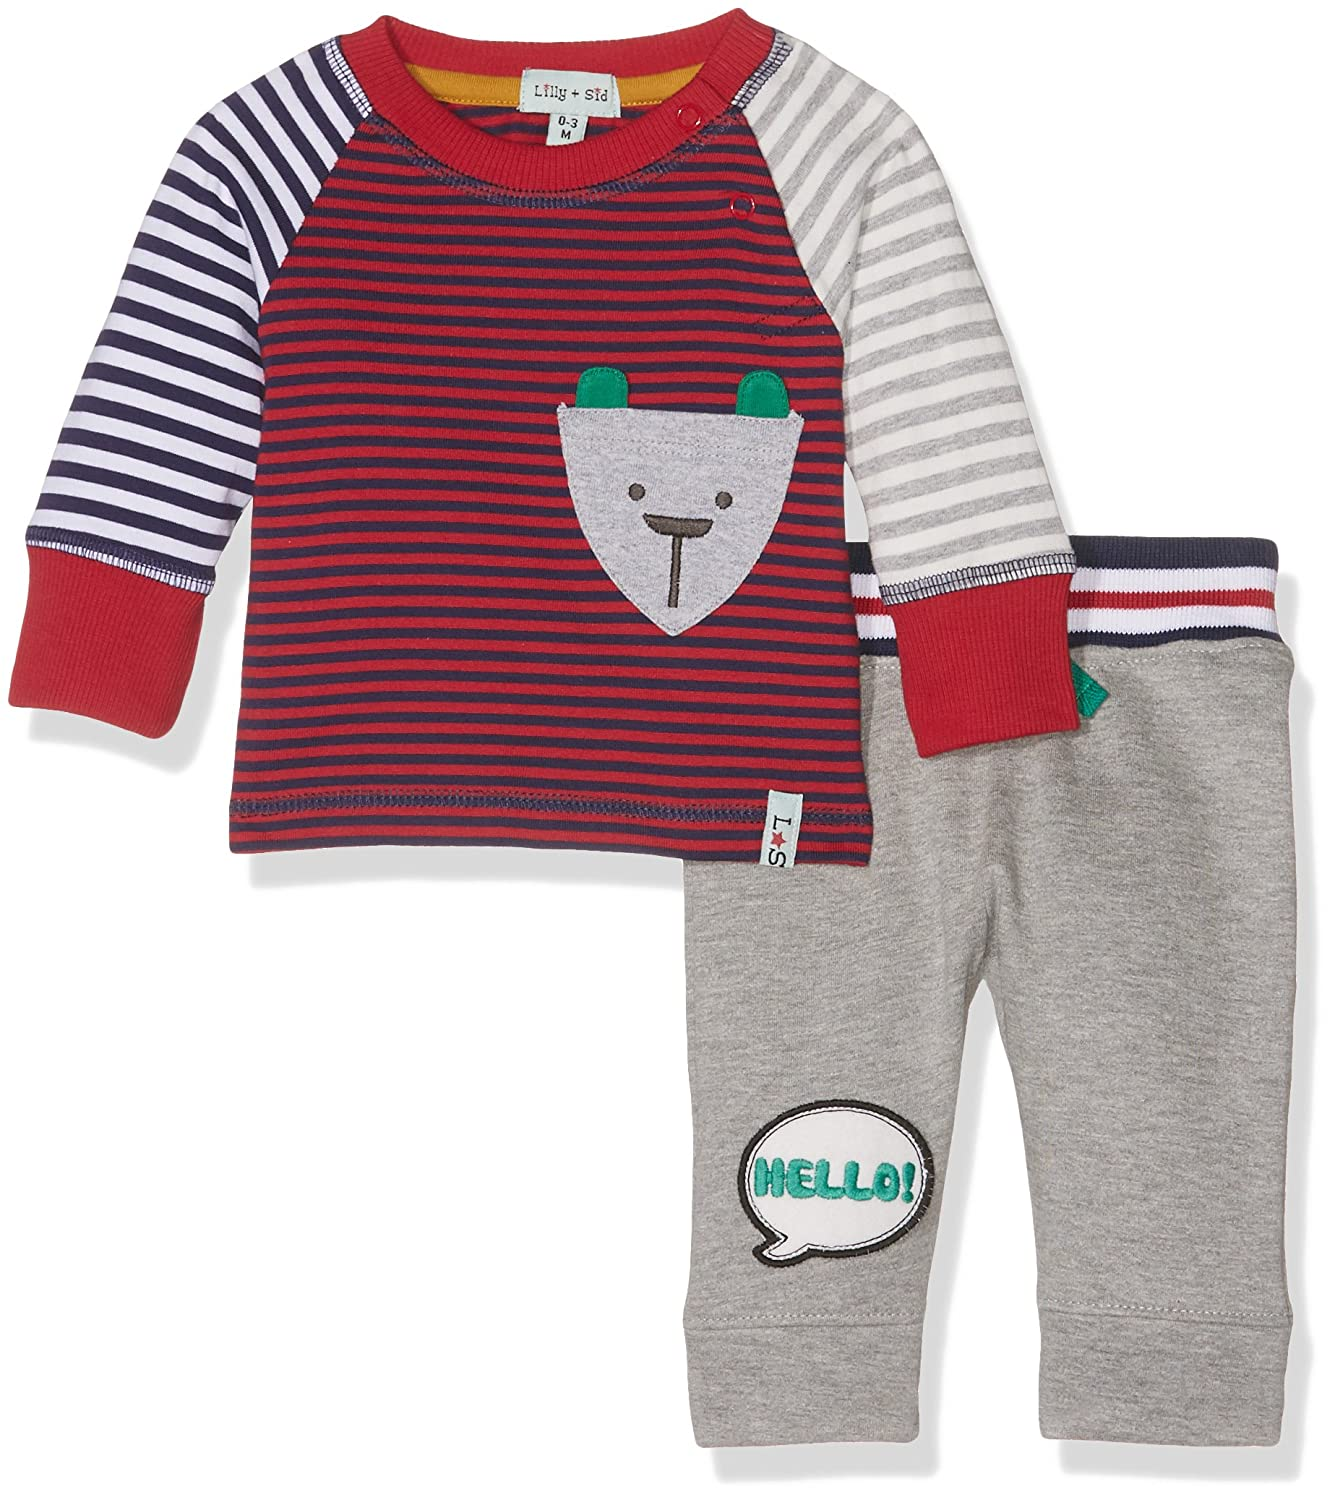 Lilly and Sid Baby Boys Hello Bear Set Clothing